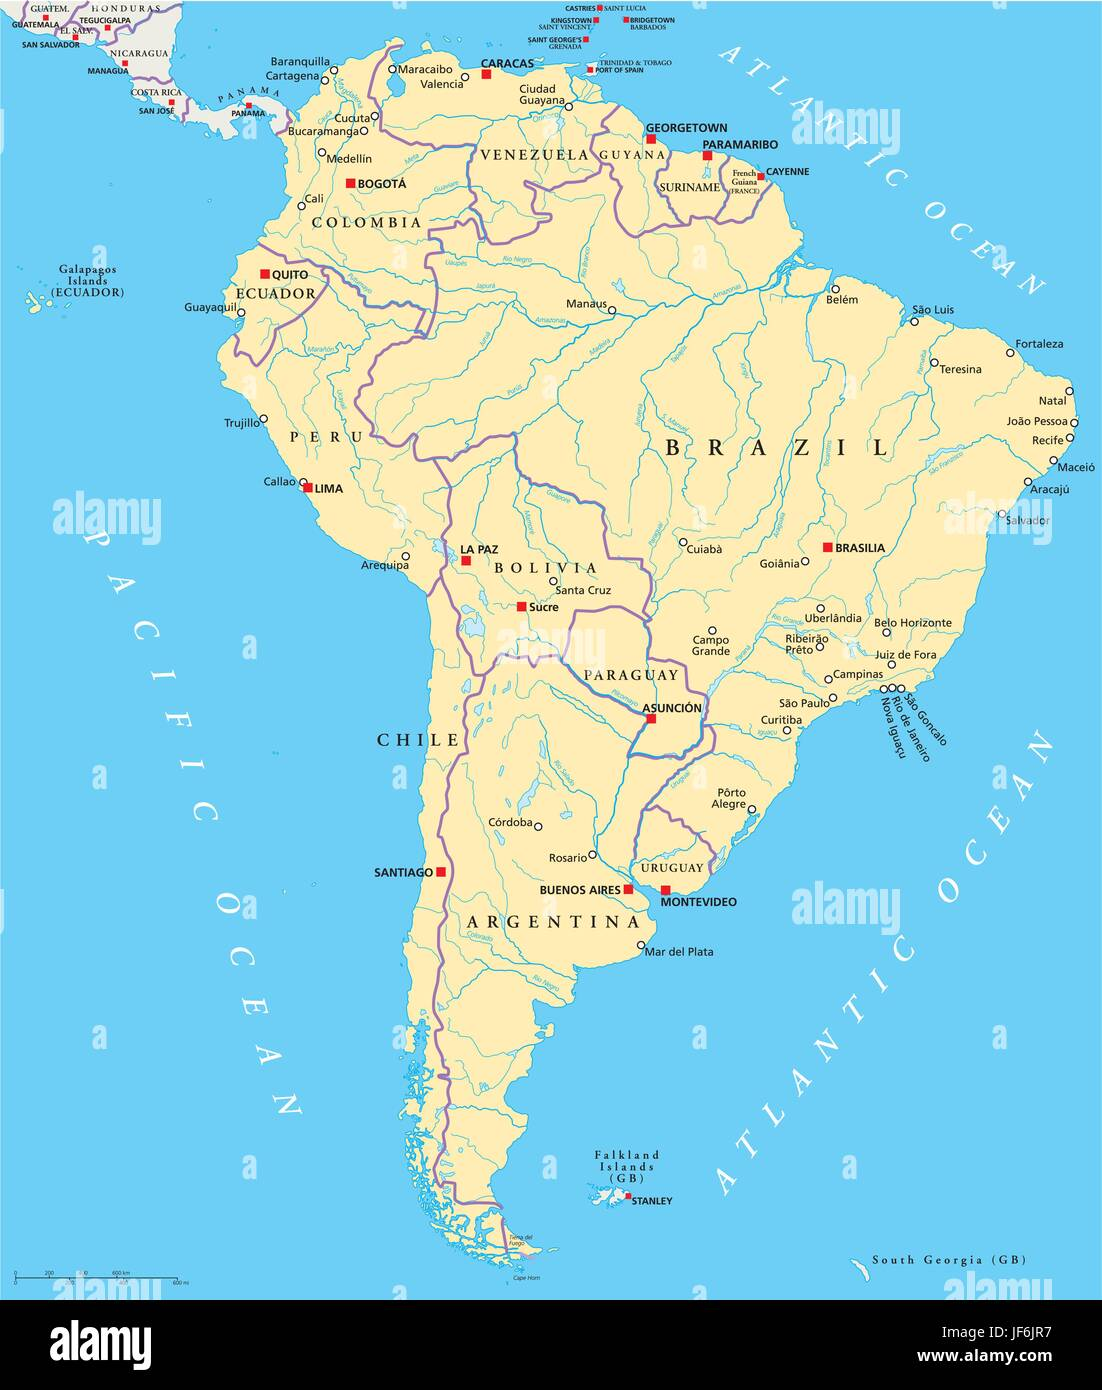 America Brazil South America Continent Venezuela States Map - Caracas on world map